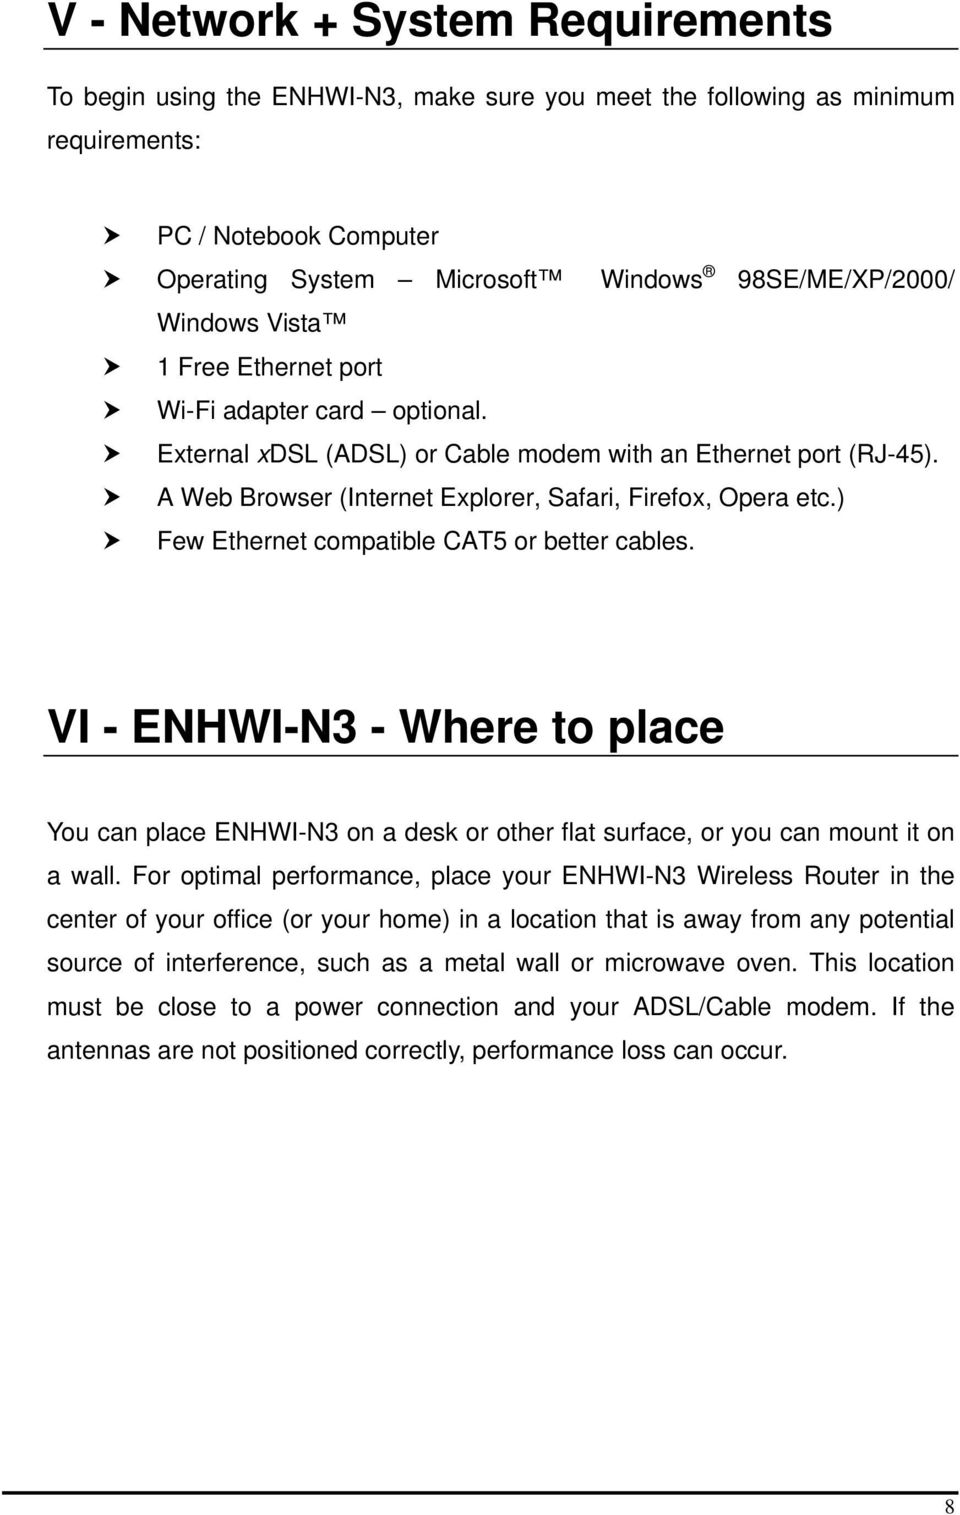 ) Few Ethernet compatible CAT5 or better cables. VI - ENHWI-N3 - Where to place You can place ENHWI-N3 on a desk or other flat surface, or you can mount it on a wall.